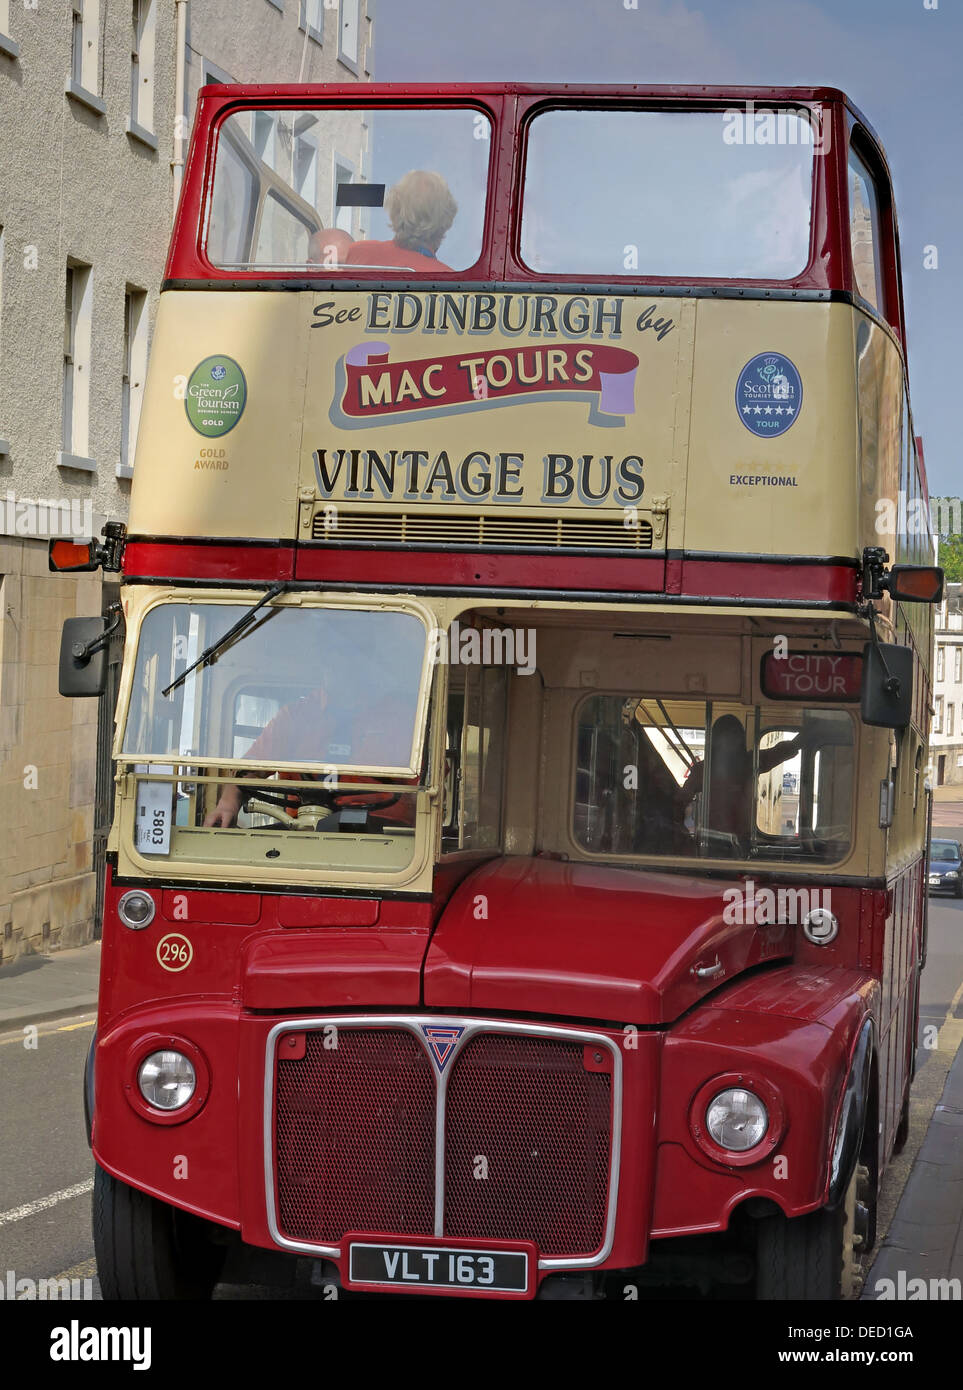 street,High,st,Edinburgh,Scotland,UK,red,omnibus,VLT,163,153,VLT163,VLT153,mactours,tours,mac,tourist,trip,trips,from,the,front,engine,Lothian,gotonysmith,Since,2007,Mac,Tours,has,operated,Forth,Tours,departues,from,Waverley,Bridge,various,tours,and,cruises,of,the,Firth,of,Forth,The,bus,used,is,a,dedicated,Plaxton,President,bodied,Dennis,Trident,painted,in,a,special,yellow,blue,and,green,Forth,Tours,livery,XIL,1484,Edinburg,Buy Pictures of,Buy Images Of